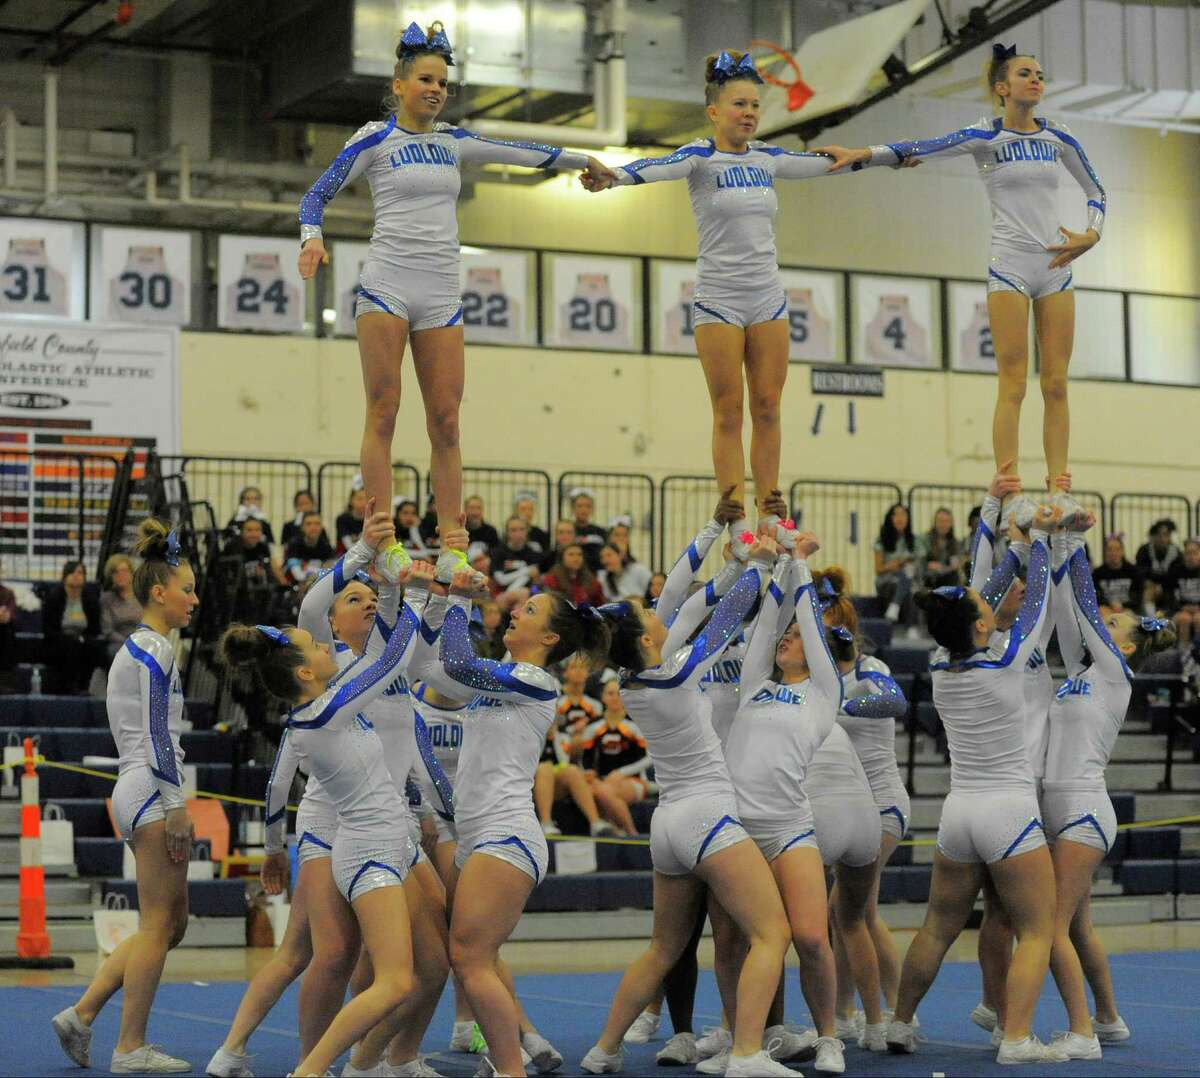 Fairfield Ludlowe cheerleaders were once again named as FCIAC champions in February, marking the team's third title. During the championship in Wilton, various squads were paired up to show support for each other. Read more.